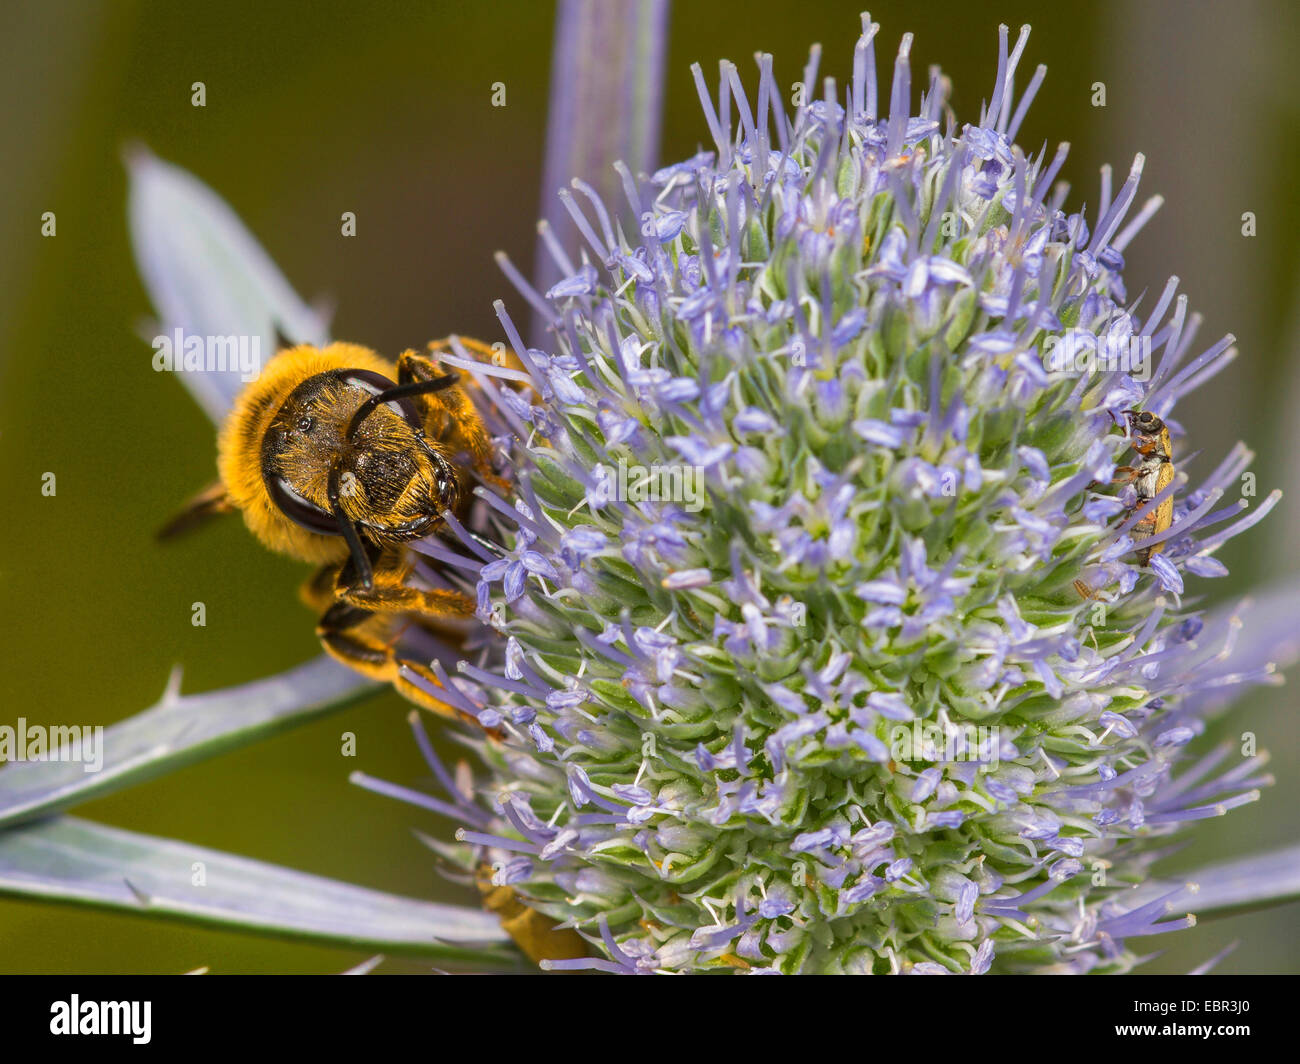 Sweat bee (Halictus scabiosae), female foraging on Eryngium planum, Germany - Stock Image